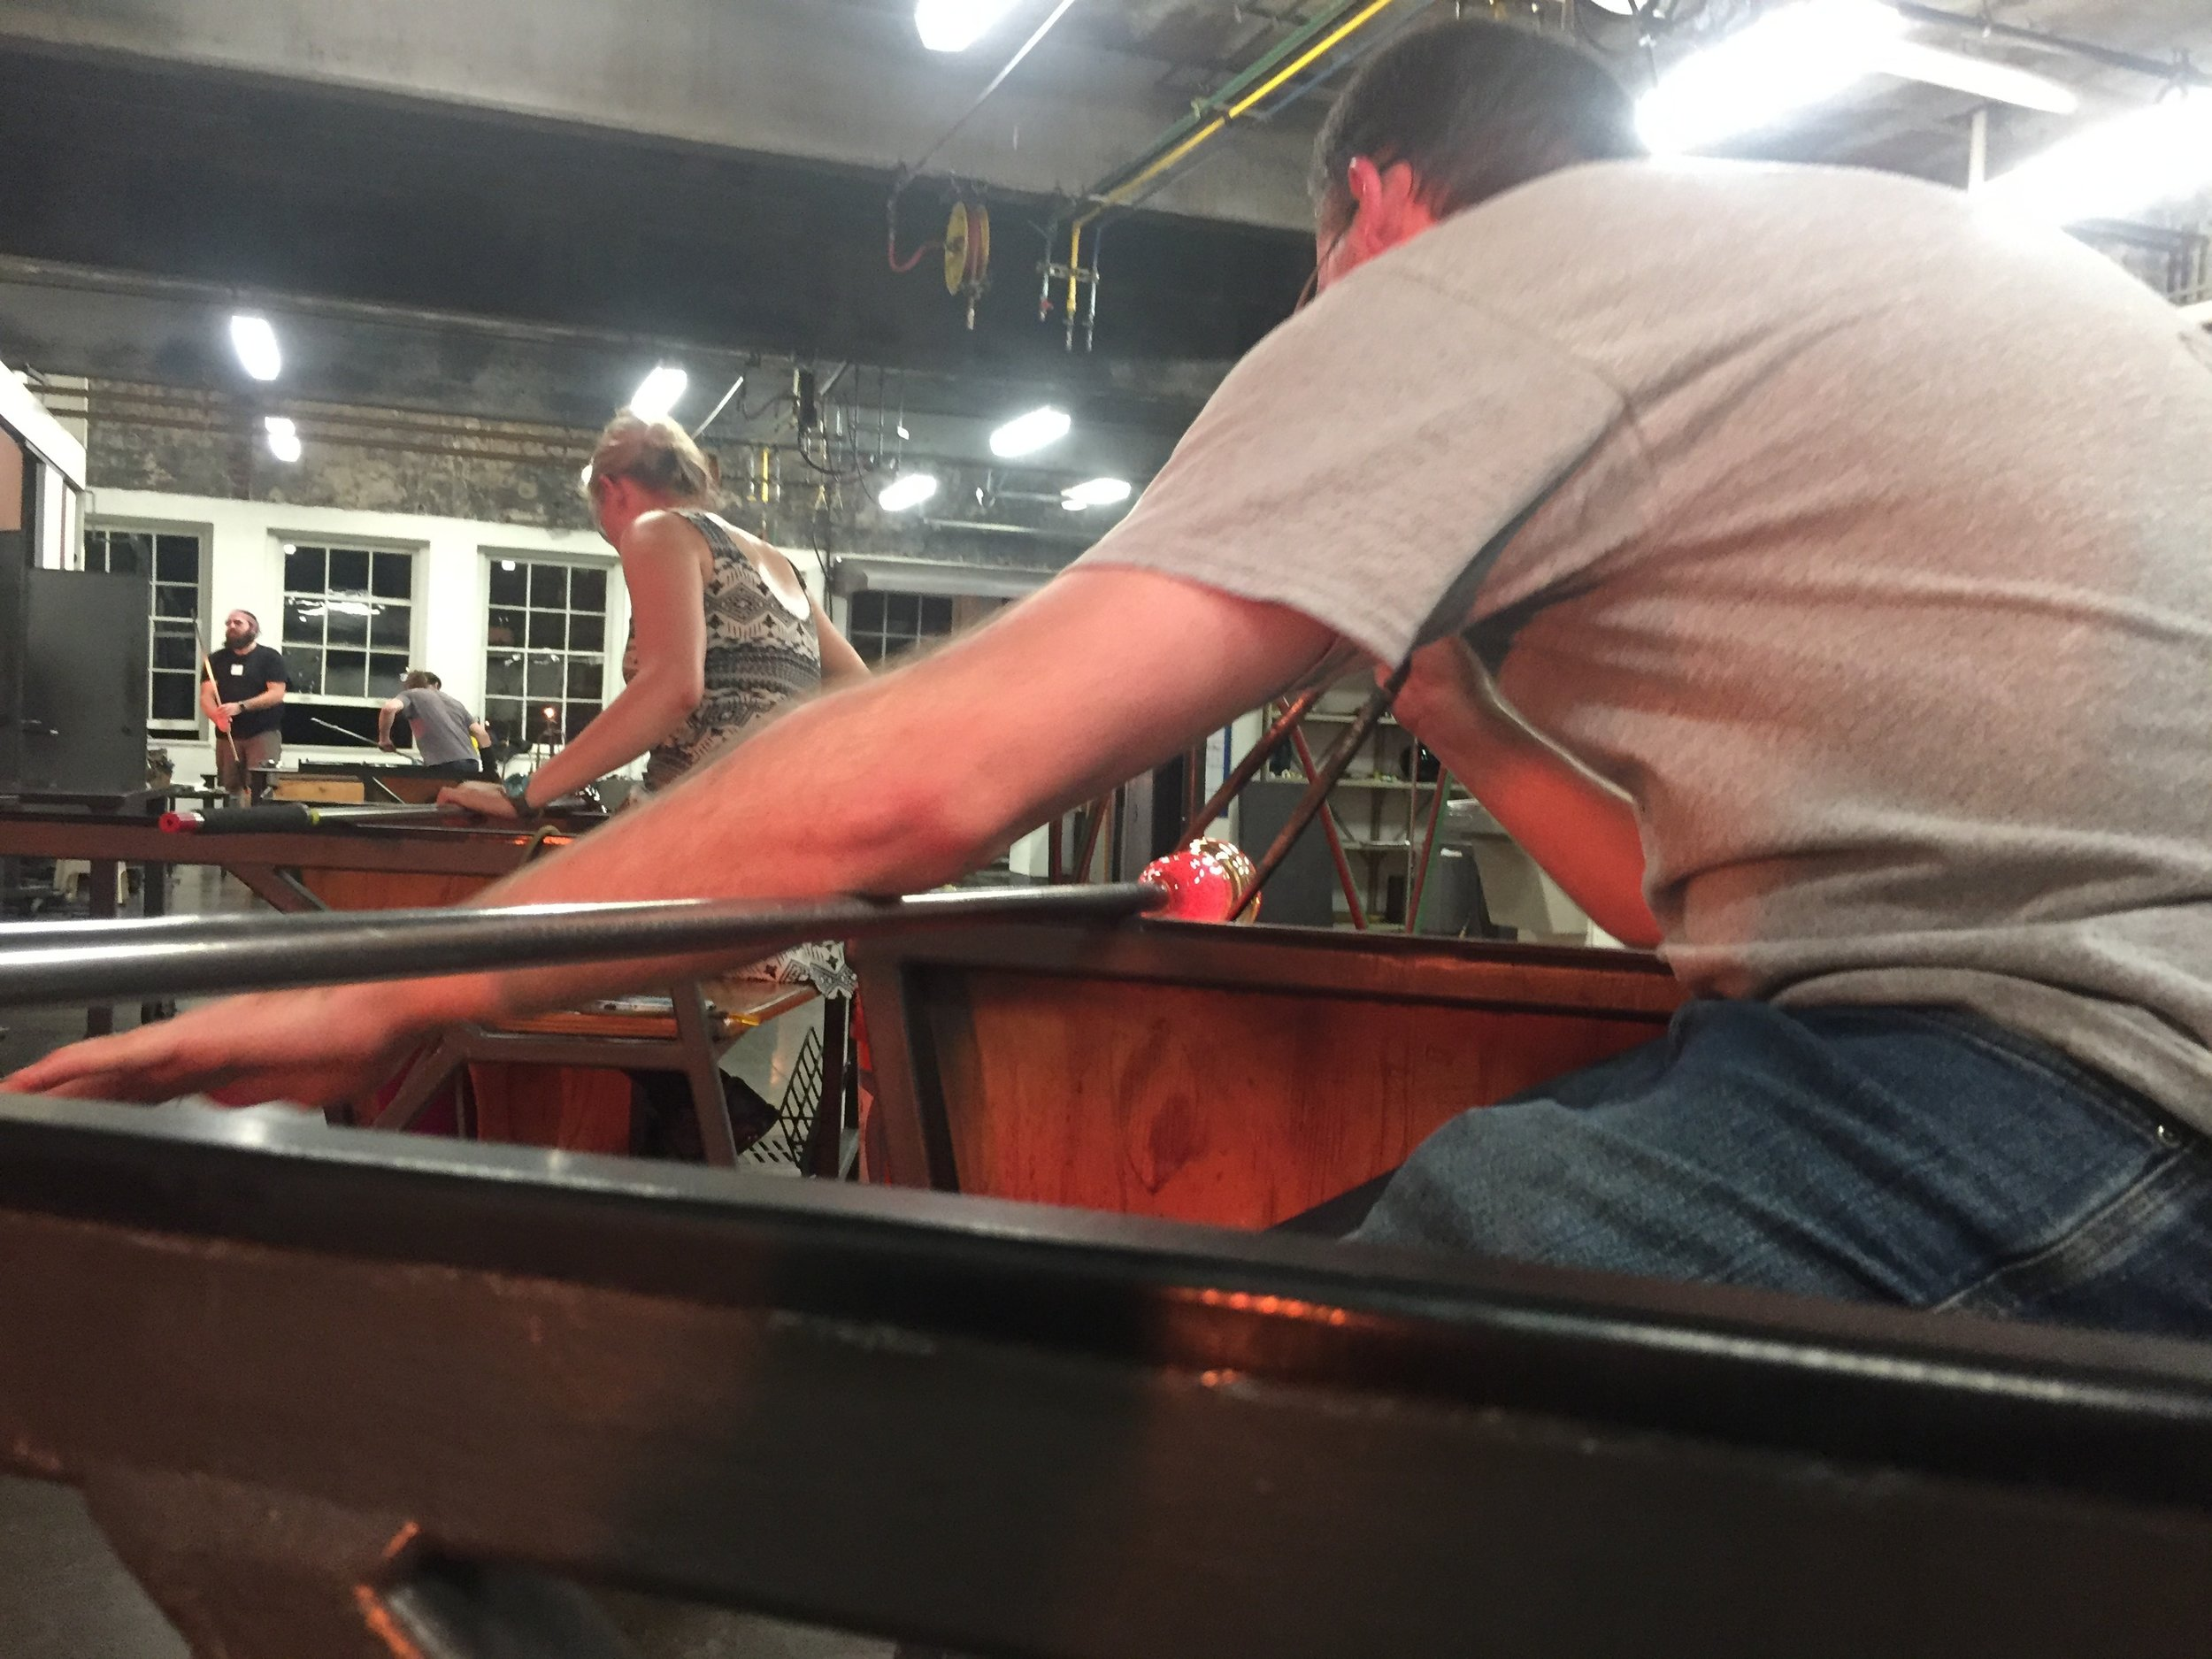 Assisting partner in glass blowing